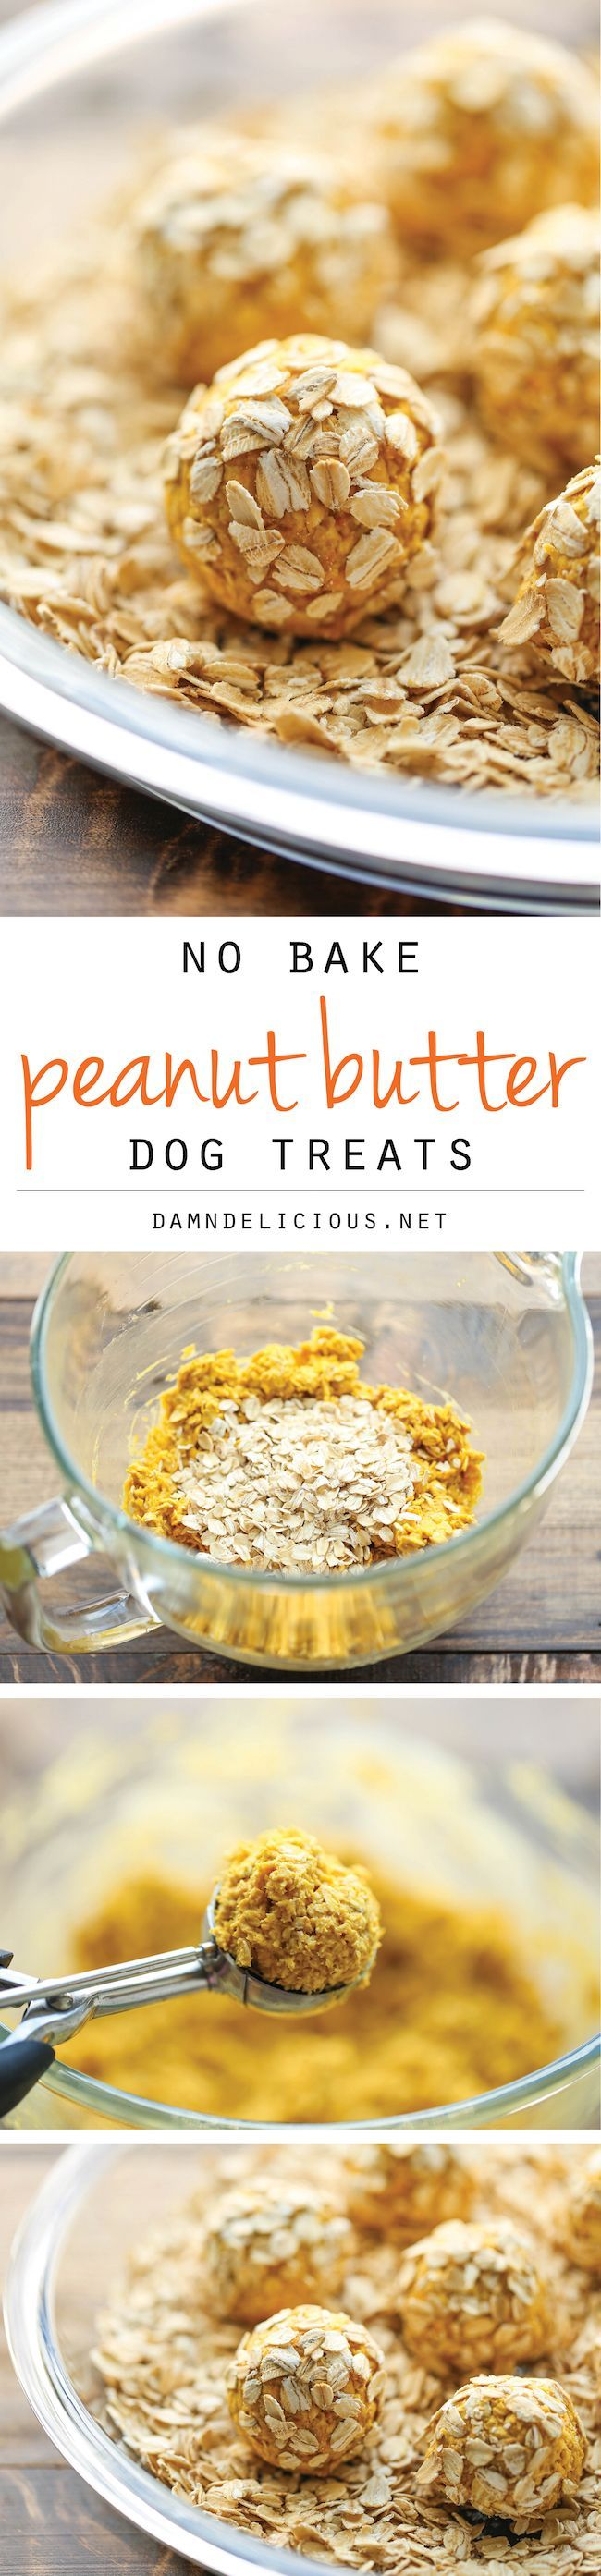 No Bake Peanut Butter Dog Treats - Easy peasy 4-ingredient treats that are sure to be your pup's favorite. And you can whip these up in just 15 min!